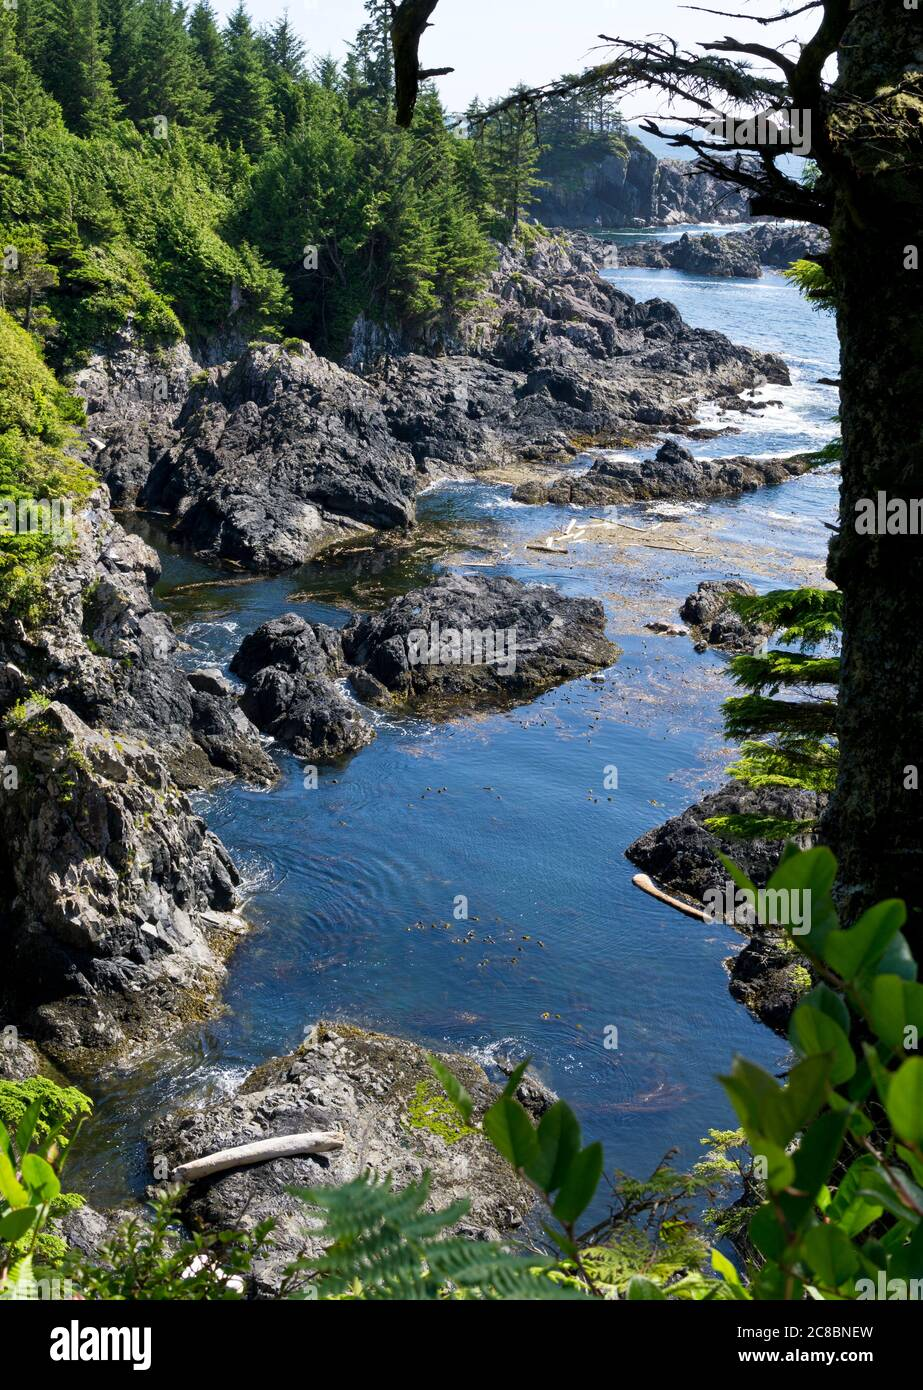 Rocky shoreline as seen from the Wild Pacific Trail in Ucluelet, British Columbia, Canada Stock Photo